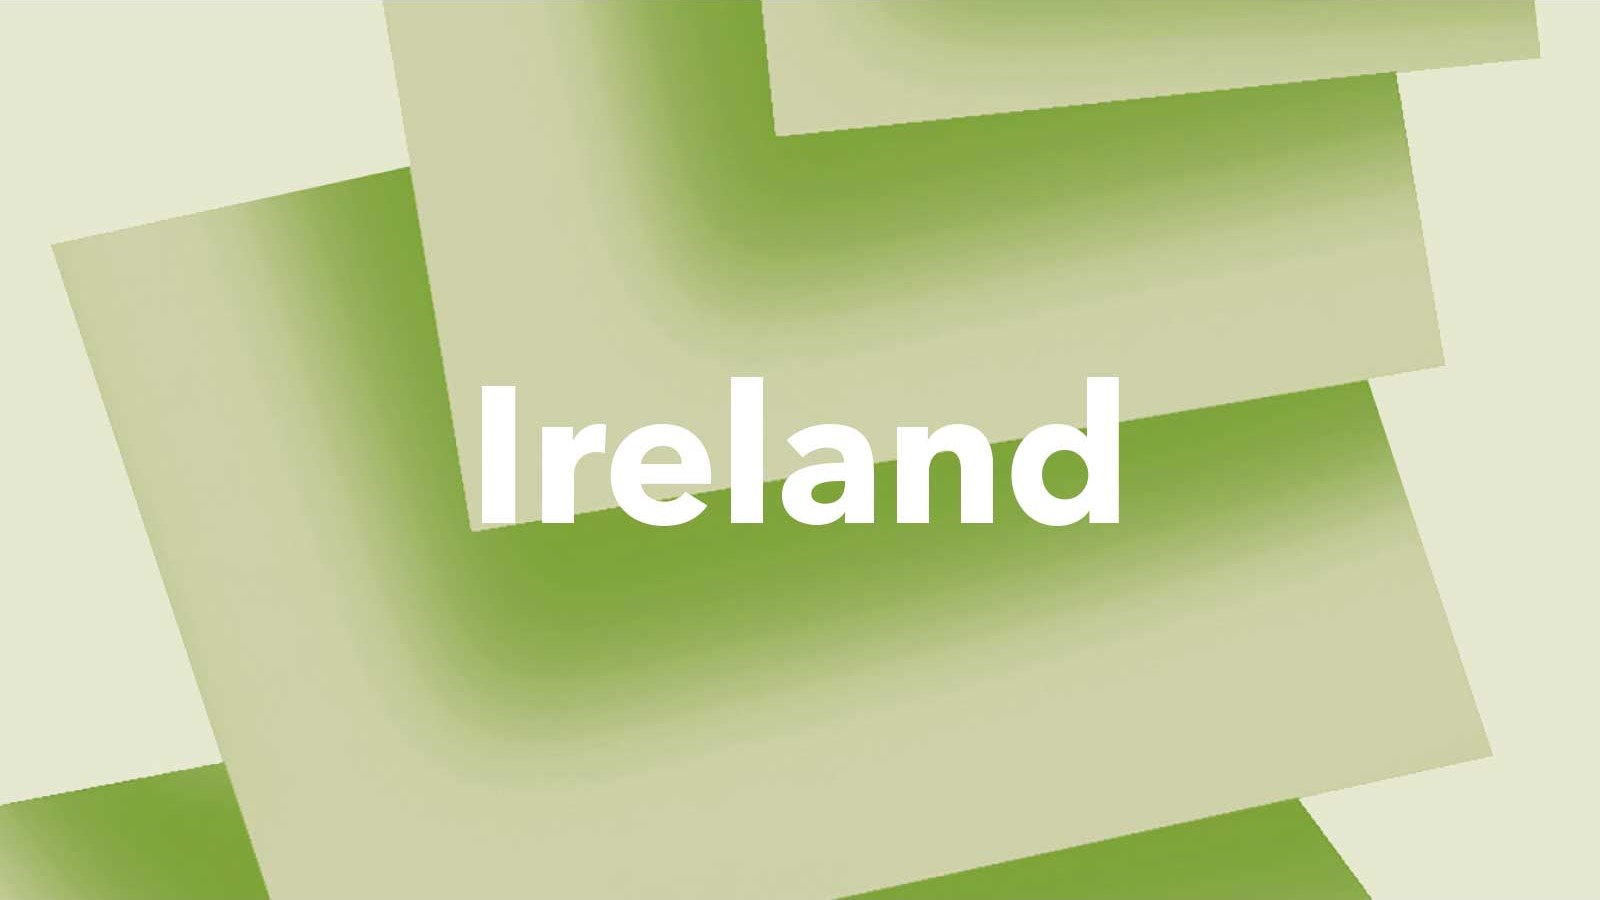 The word 'Ireland' on a green background